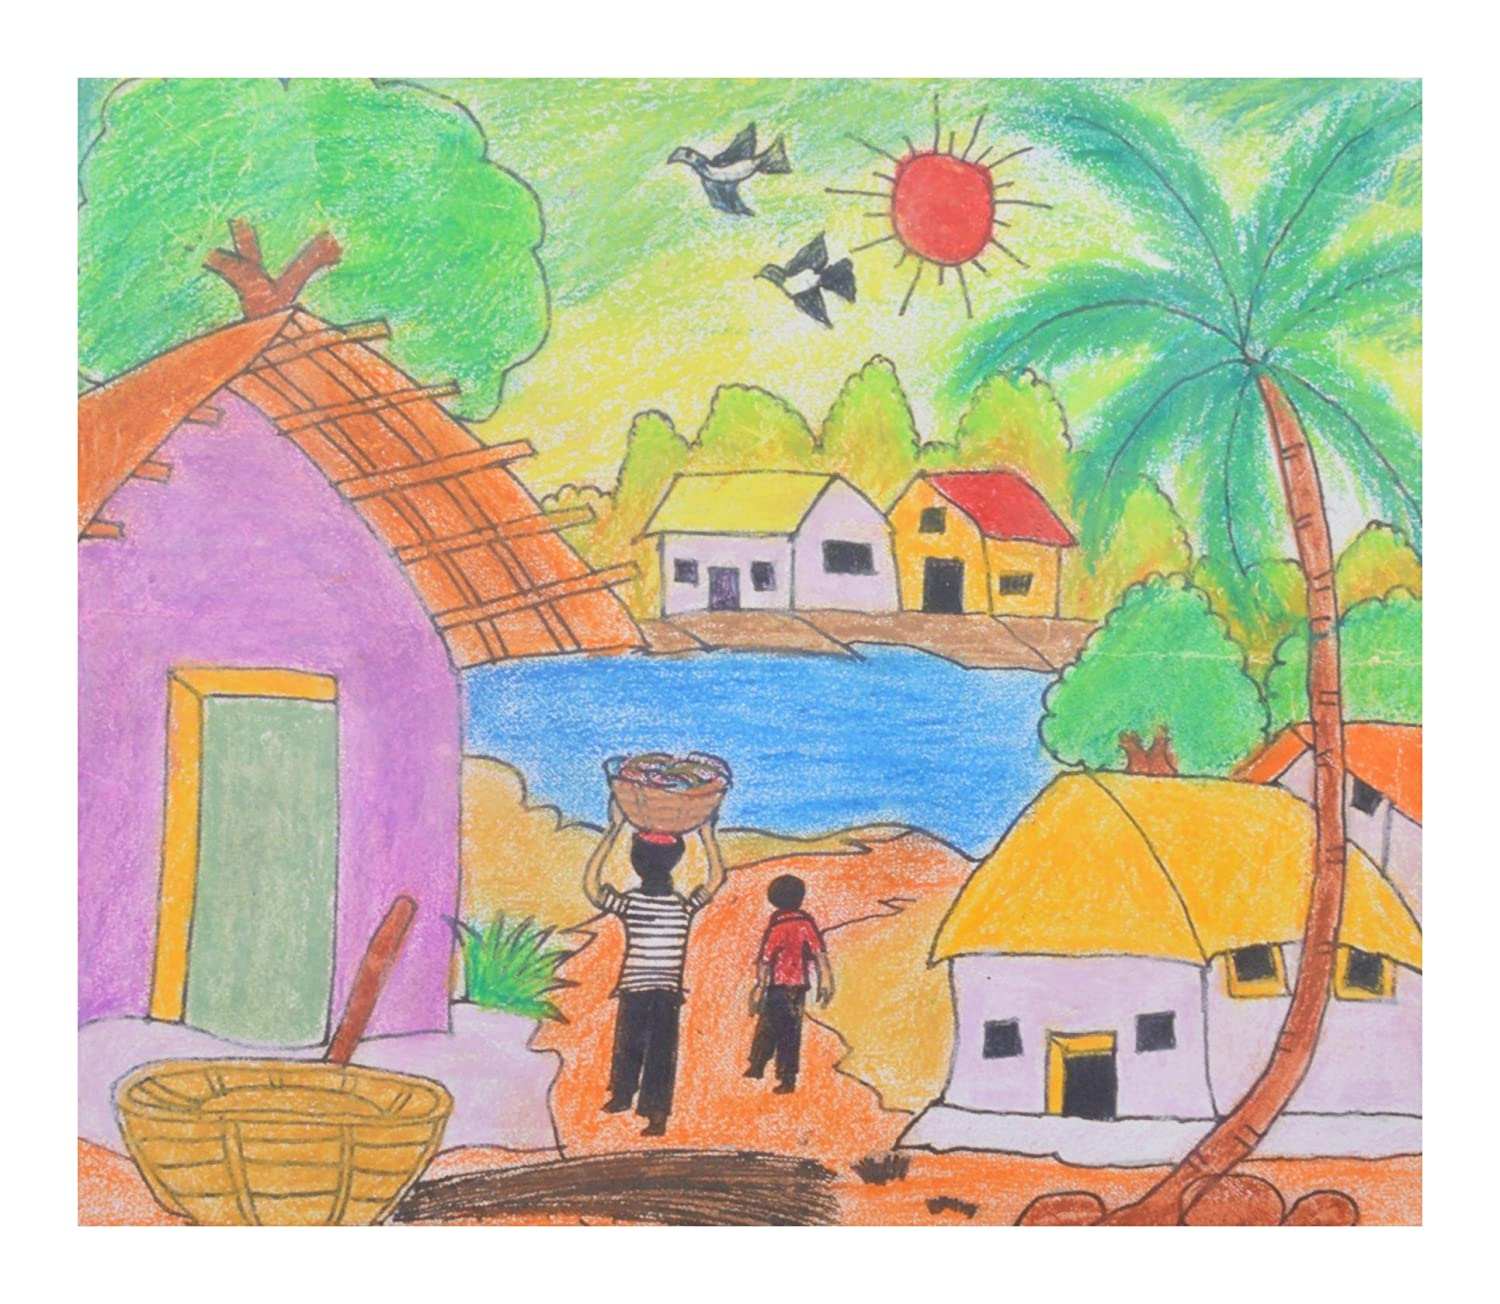 Rajs creation paper village life drawing 18 cm x 24 cm x 2 cm amazon in home kitchen